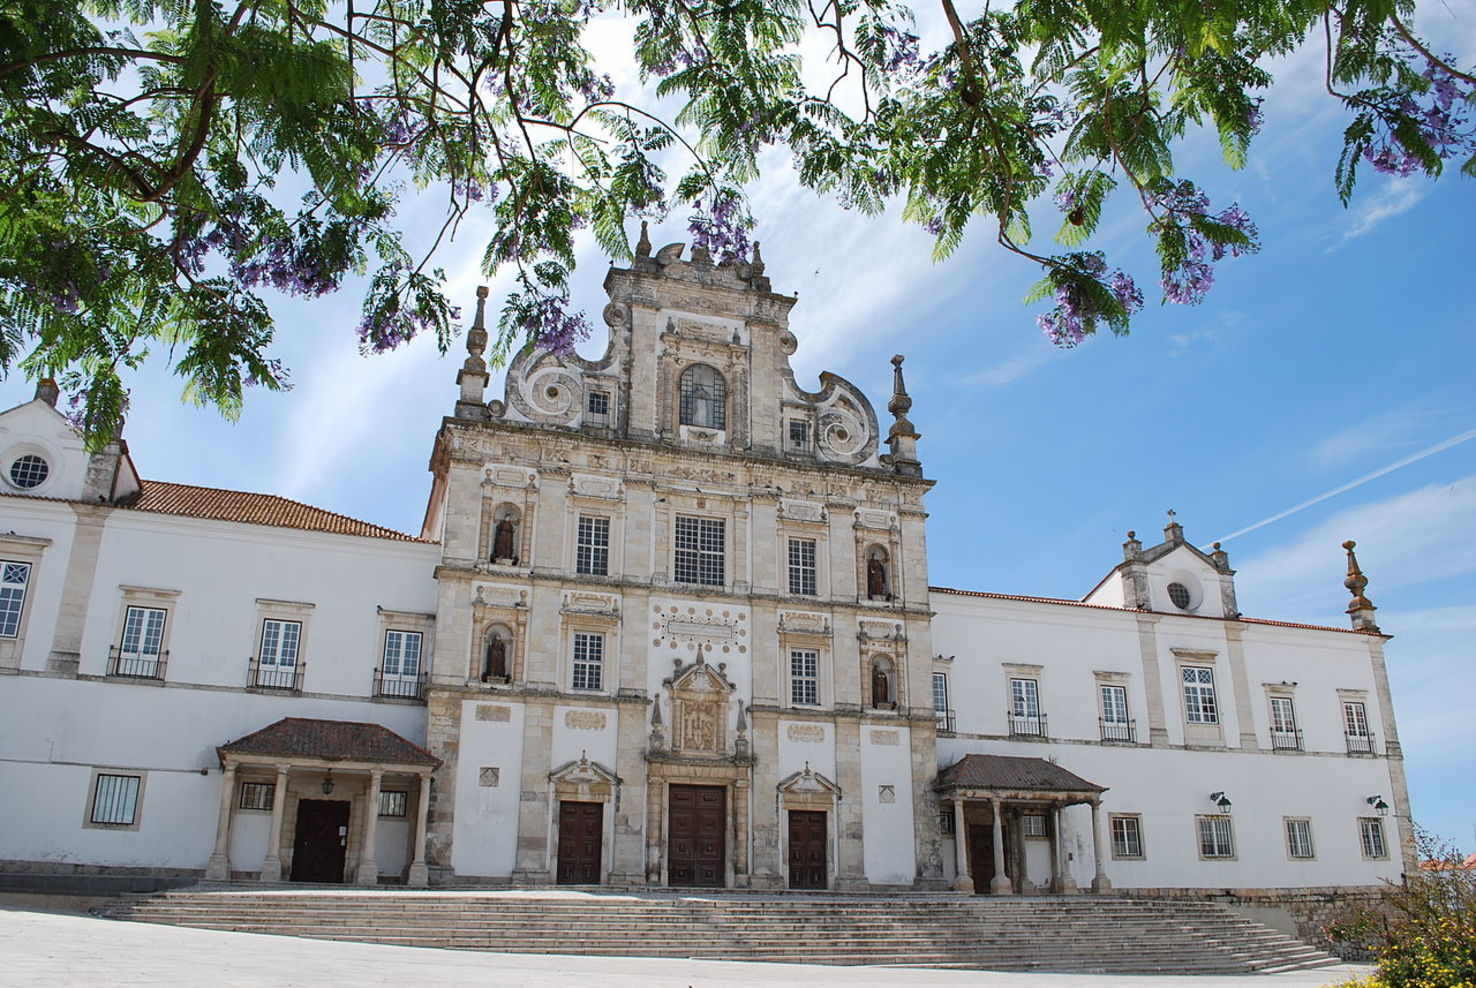 Fatima Lourdes And Shrines Of Spain   Tour Package To Spain/ Portugal